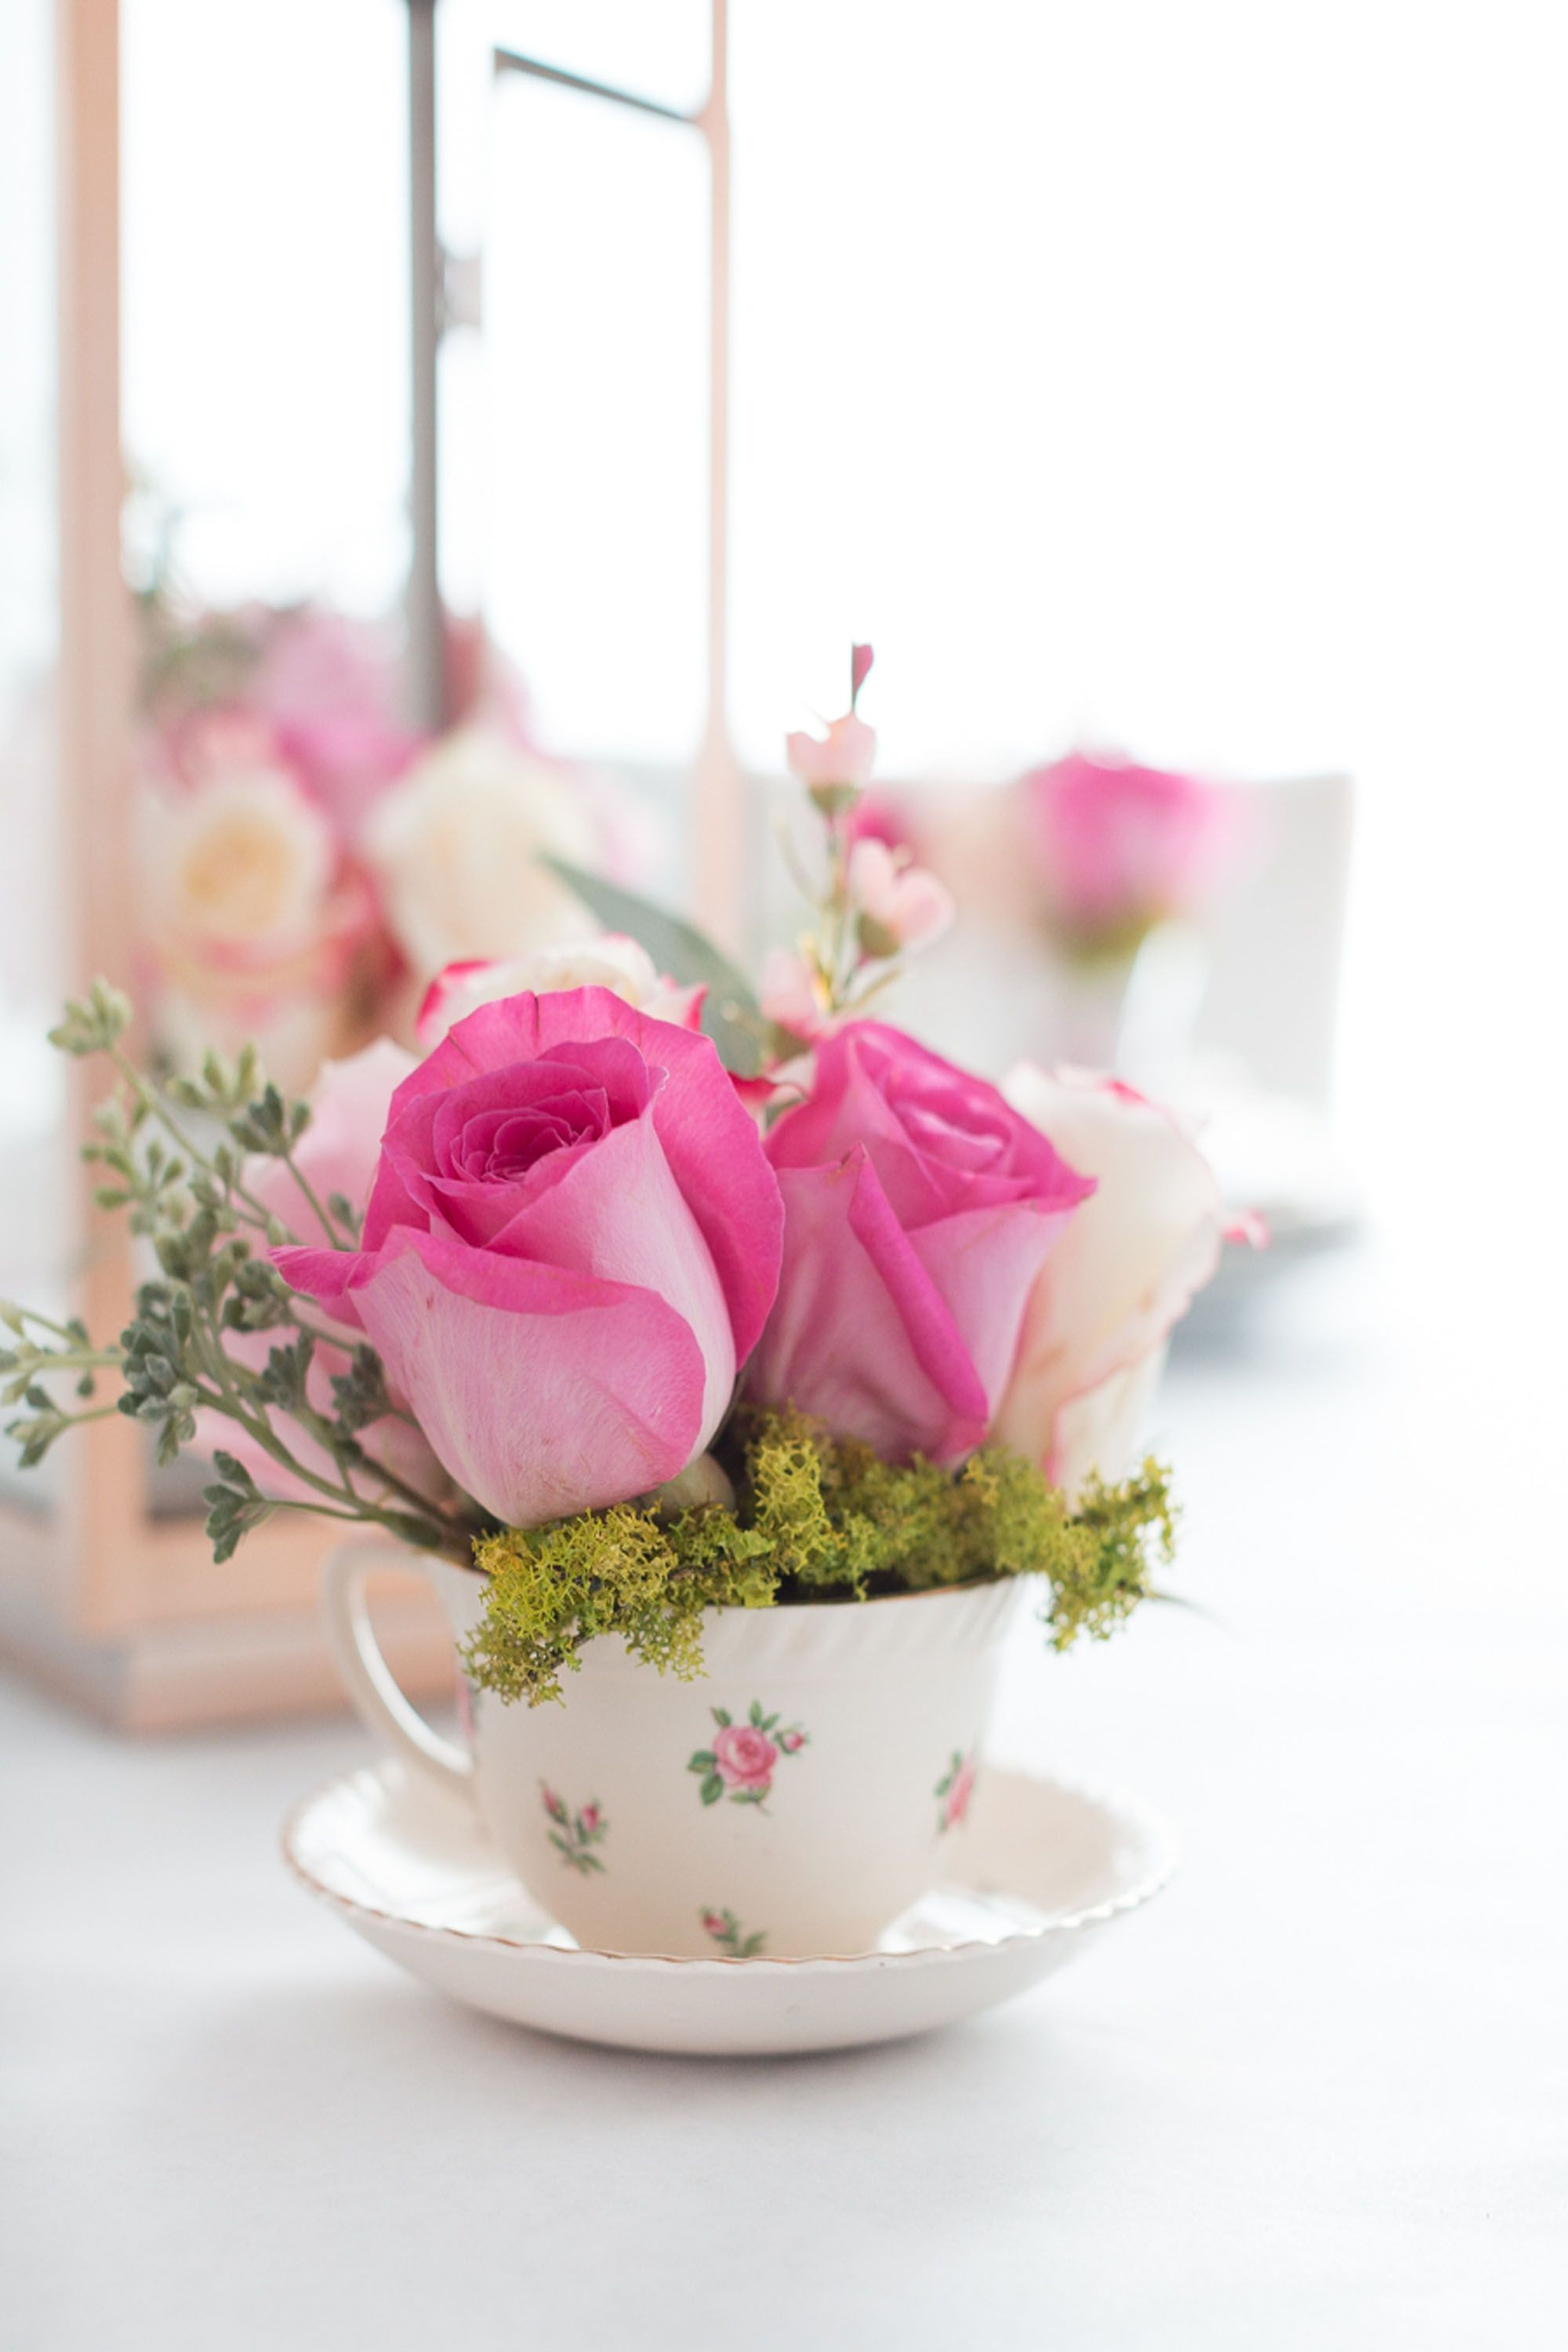 30 Easy Floral Arrangement Ideas - Creative DIY Flower Arrangements